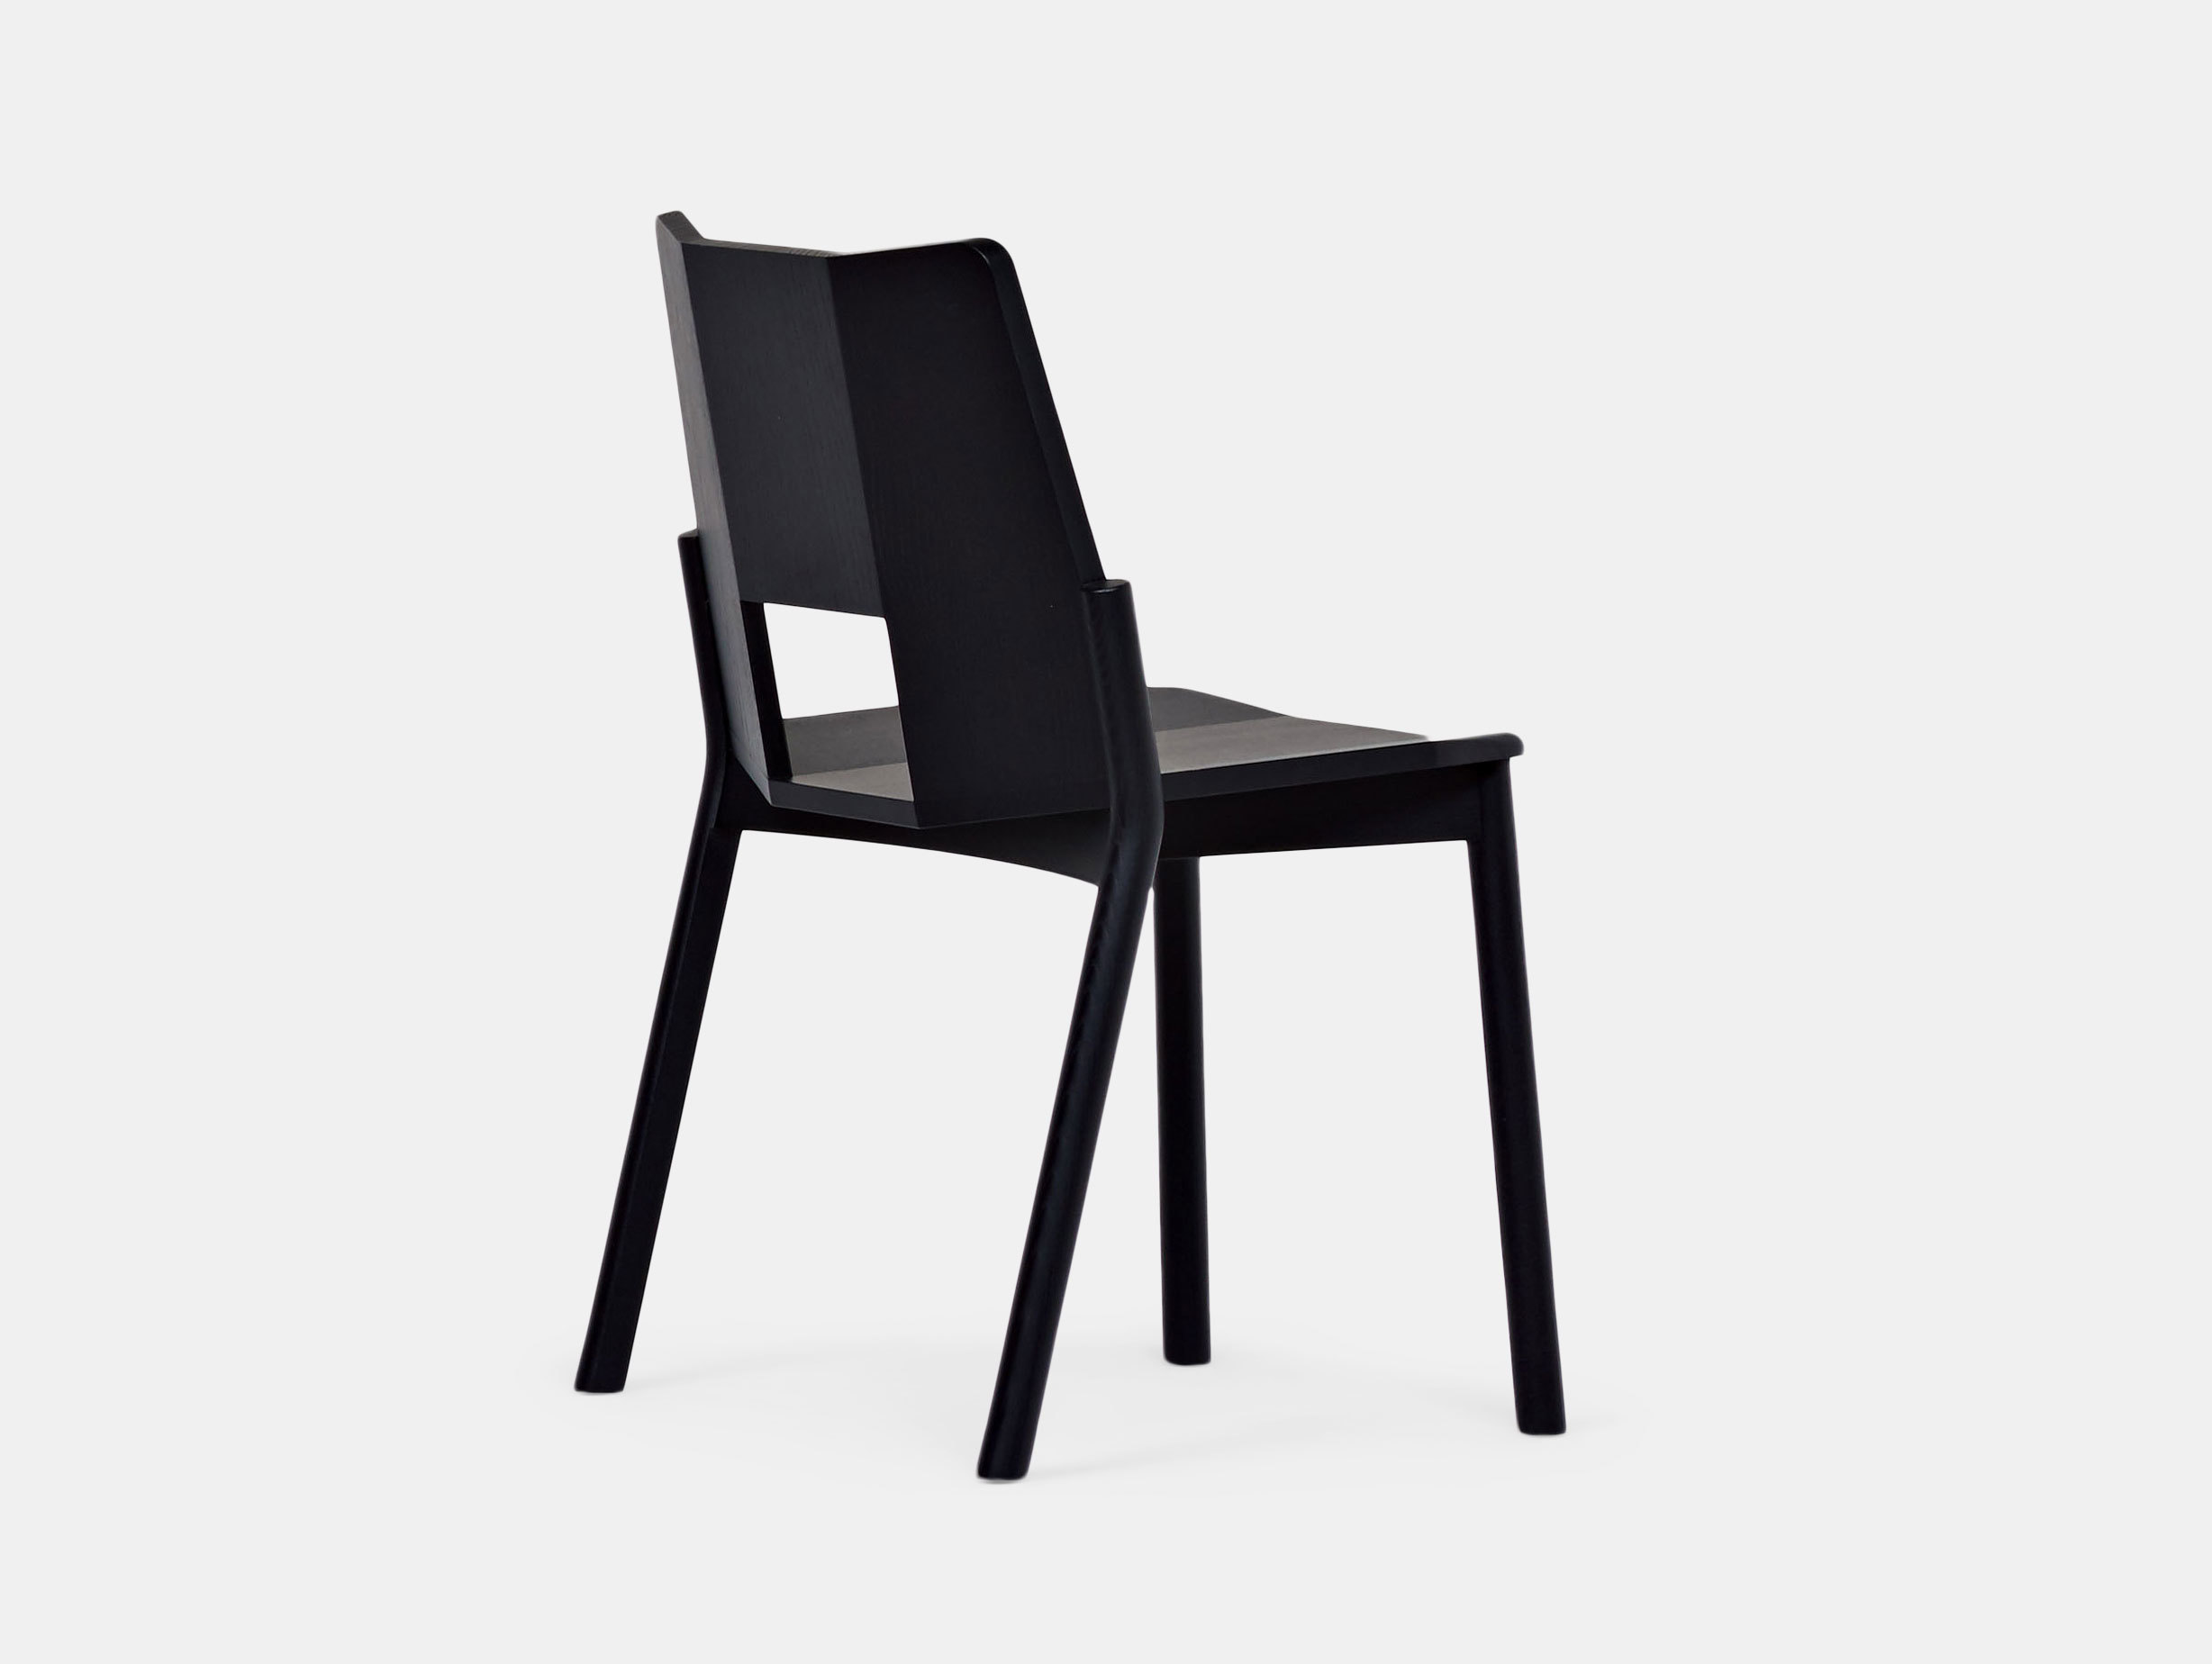 Mattiazzi Tronco Chair Sam Hecht Black